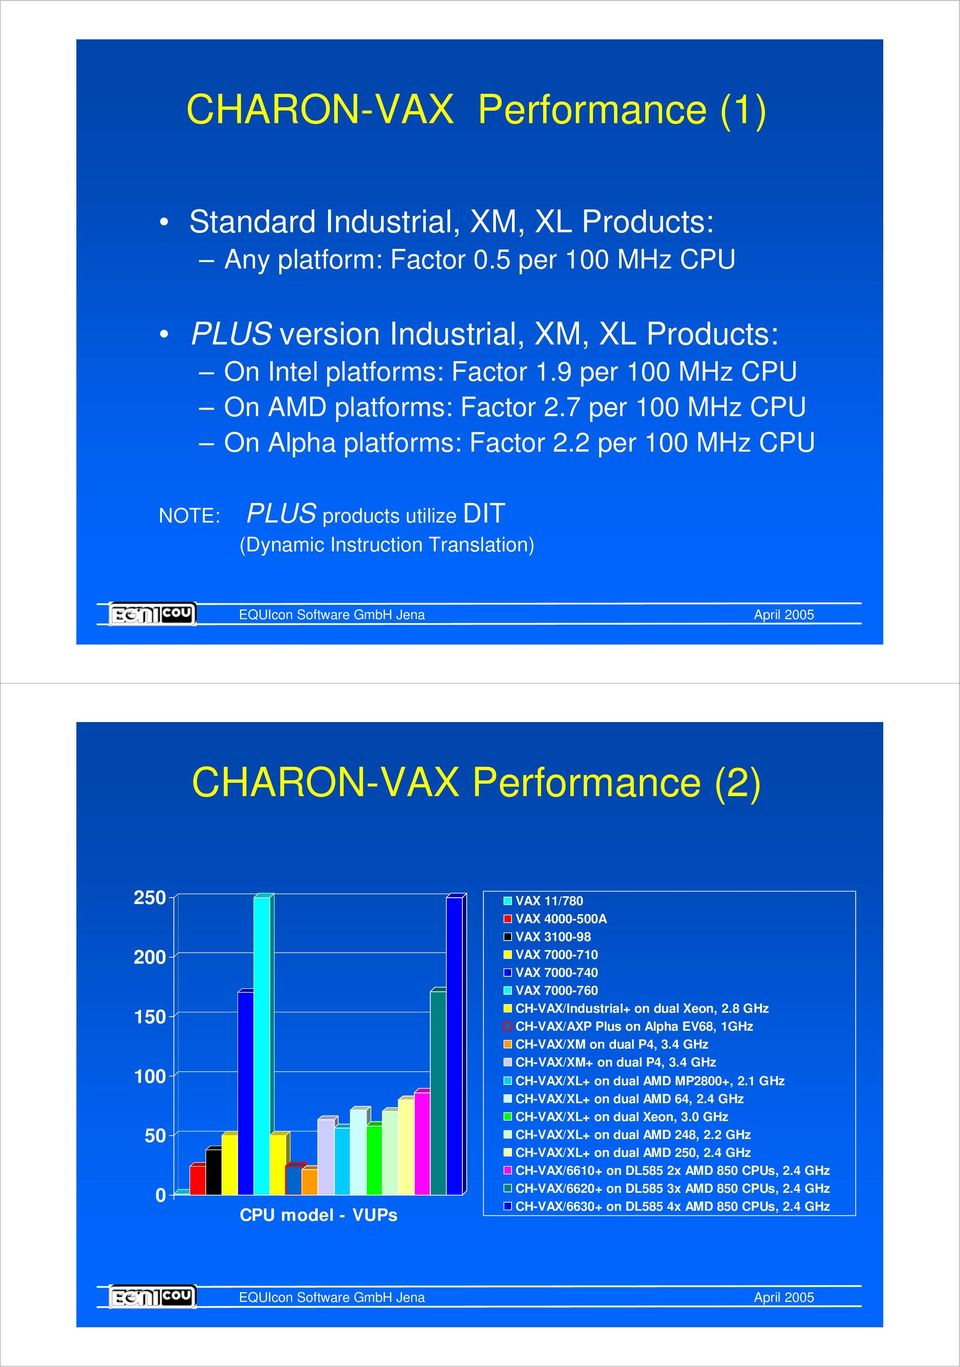 2 per 100 MHz CPU NOTE: PLUS products utilize DIT (Dynamic Instruction Translation) CHARON-VAX Performance (2) 250 200 150 100 50 0 CPU model - VUPs VAX 11/780 VAX 4000-500A VAX 3100-98 VAX 7000-710